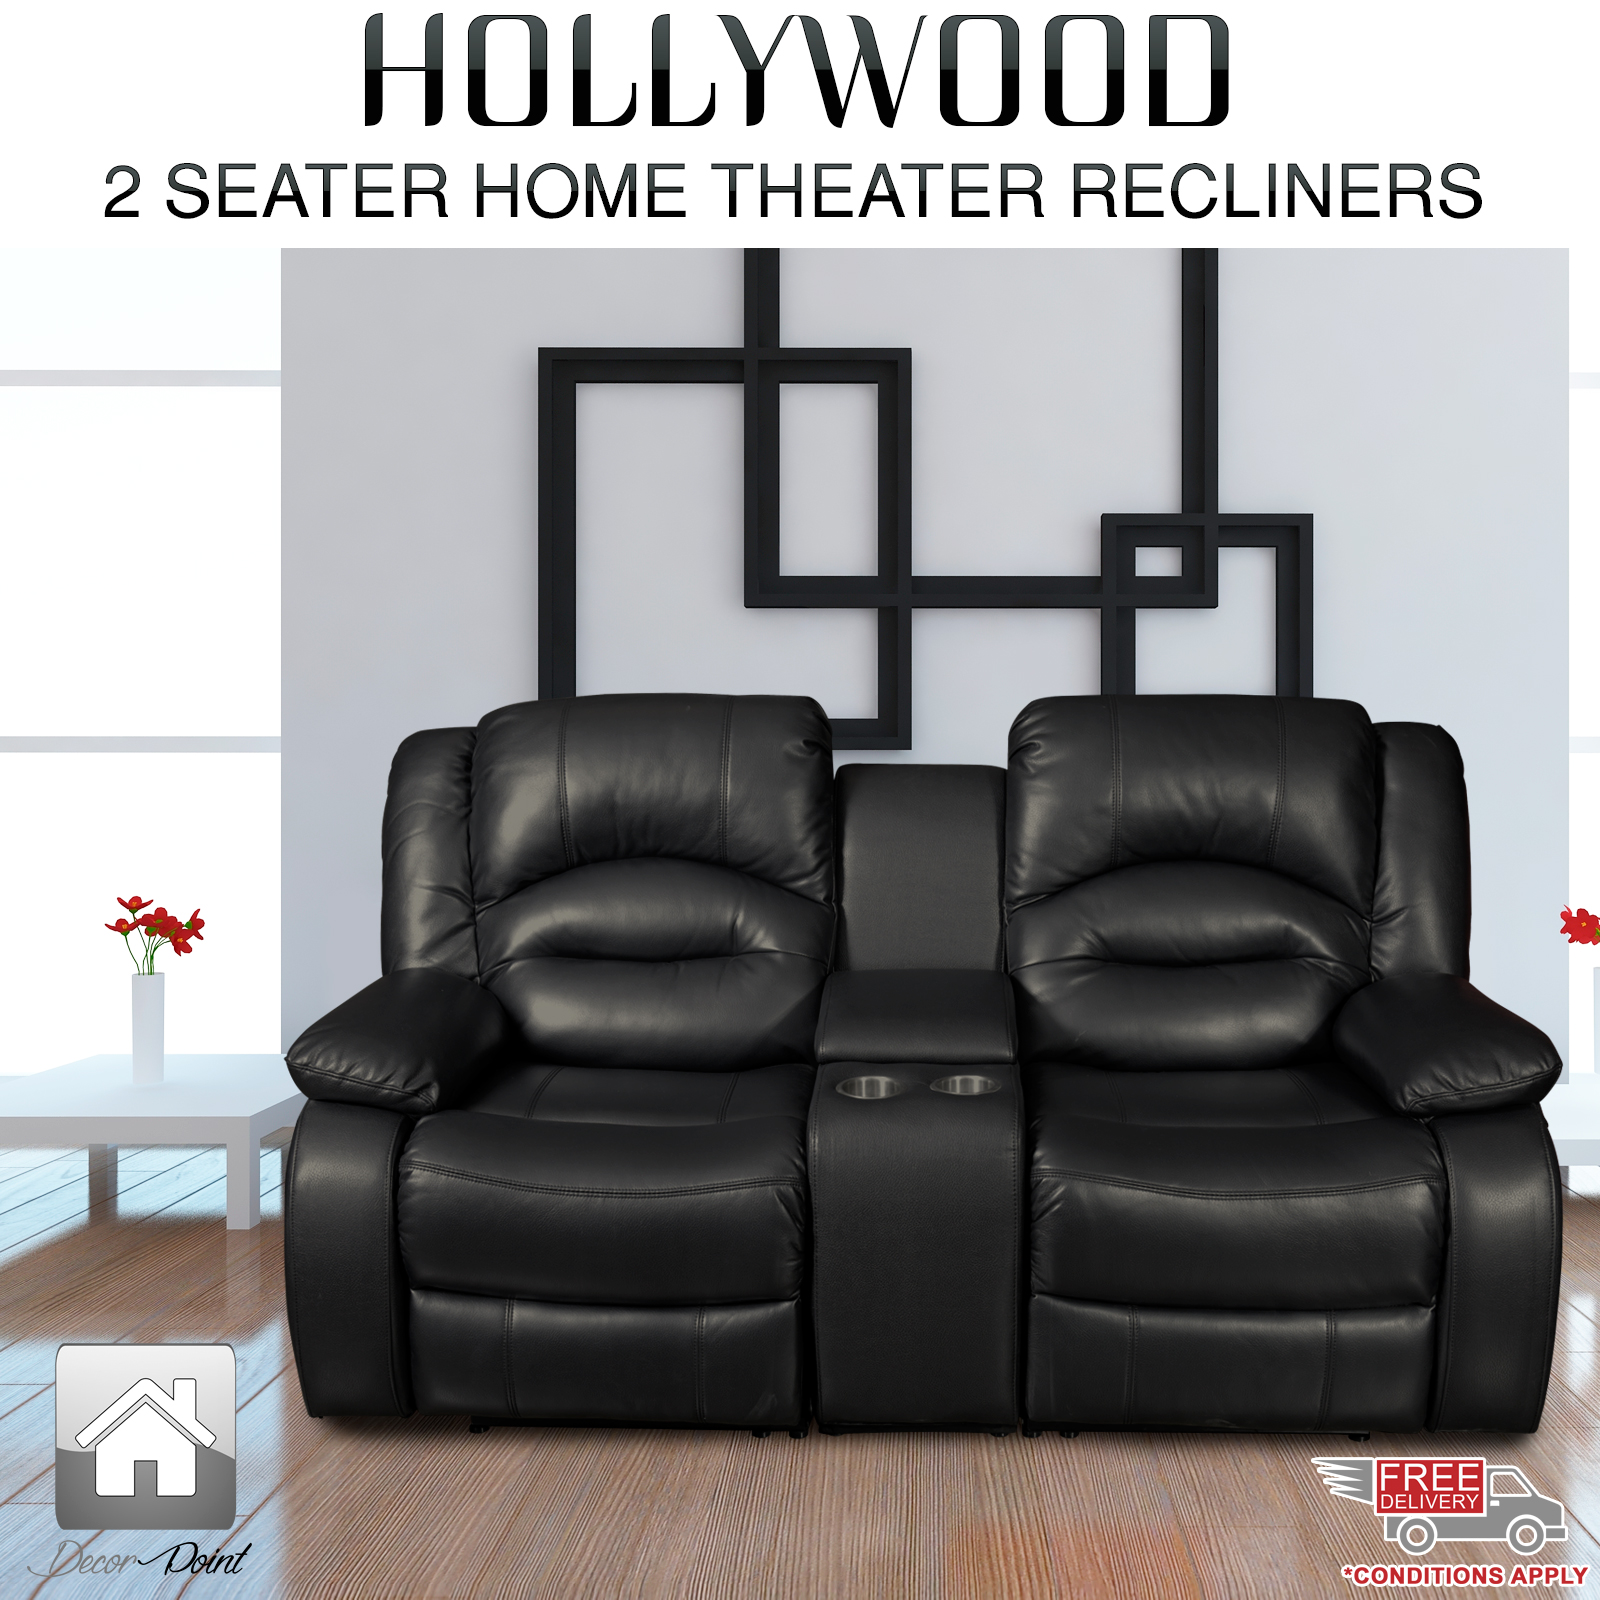 Overview. The best HOLLYWOOD HOME THEATER RECLINER ... & New Luxury Hollywood Black Leather Air 2 Seater Home Theater ... islam-shia.org